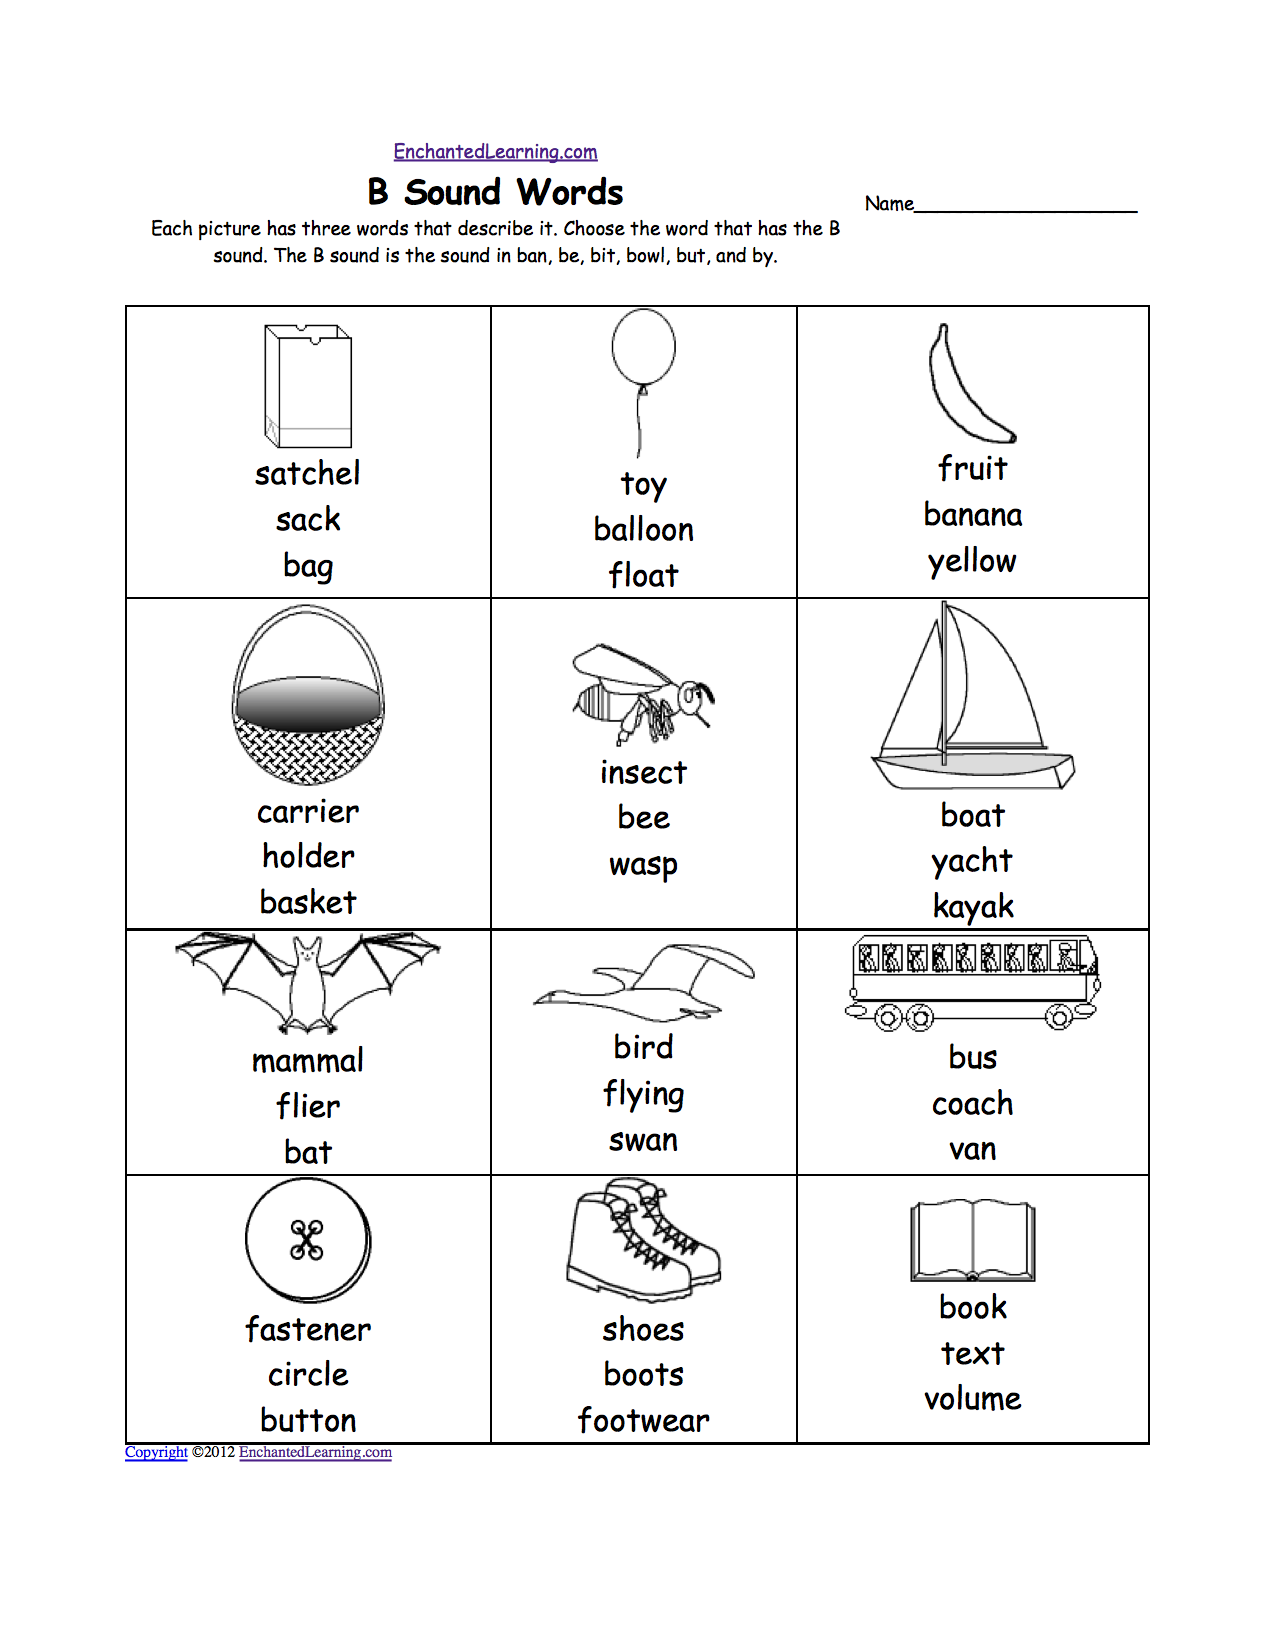 Aldiablosus  Pleasant Phonics Worksheets Multiple Choice Worksheets To Print  With Excellent Quotbquot Sound Phonics Worksheet Multiple Choice Each Picture Has Three Words That Describe It Choose The Word That Has A Quotbquot Sound The Quotbquot Sound Is The Sound  With Divine Multiplication Times Tables Worksheets Also Rotation Vs Revolution Worksheet In Addition Multiplying Fractions By Fractions Worksheets And Short Vowel Worksheets For First Grade As Well As Simple And Complete Predicate Worksheets Additionally Sequencing Pictures Worksheets From Enchantedlearningcom With Aldiablosus  Excellent Phonics Worksheets Multiple Choice Worksheets To Print  With Divine Quotbquot Sound Phonics Worksheet Multiple Choice Each Picture Has Three Words That Describe It Choose The Word That Has A Quotbquot Sound The Quotbquot Sound Is The Sound  And Pleasant Multiplication Times Tables Worksheets Also Rotation Vs Revolution Worksheet In Addition Multiplying Fractions By Fractions Worksheets From Enchantedlearningcom